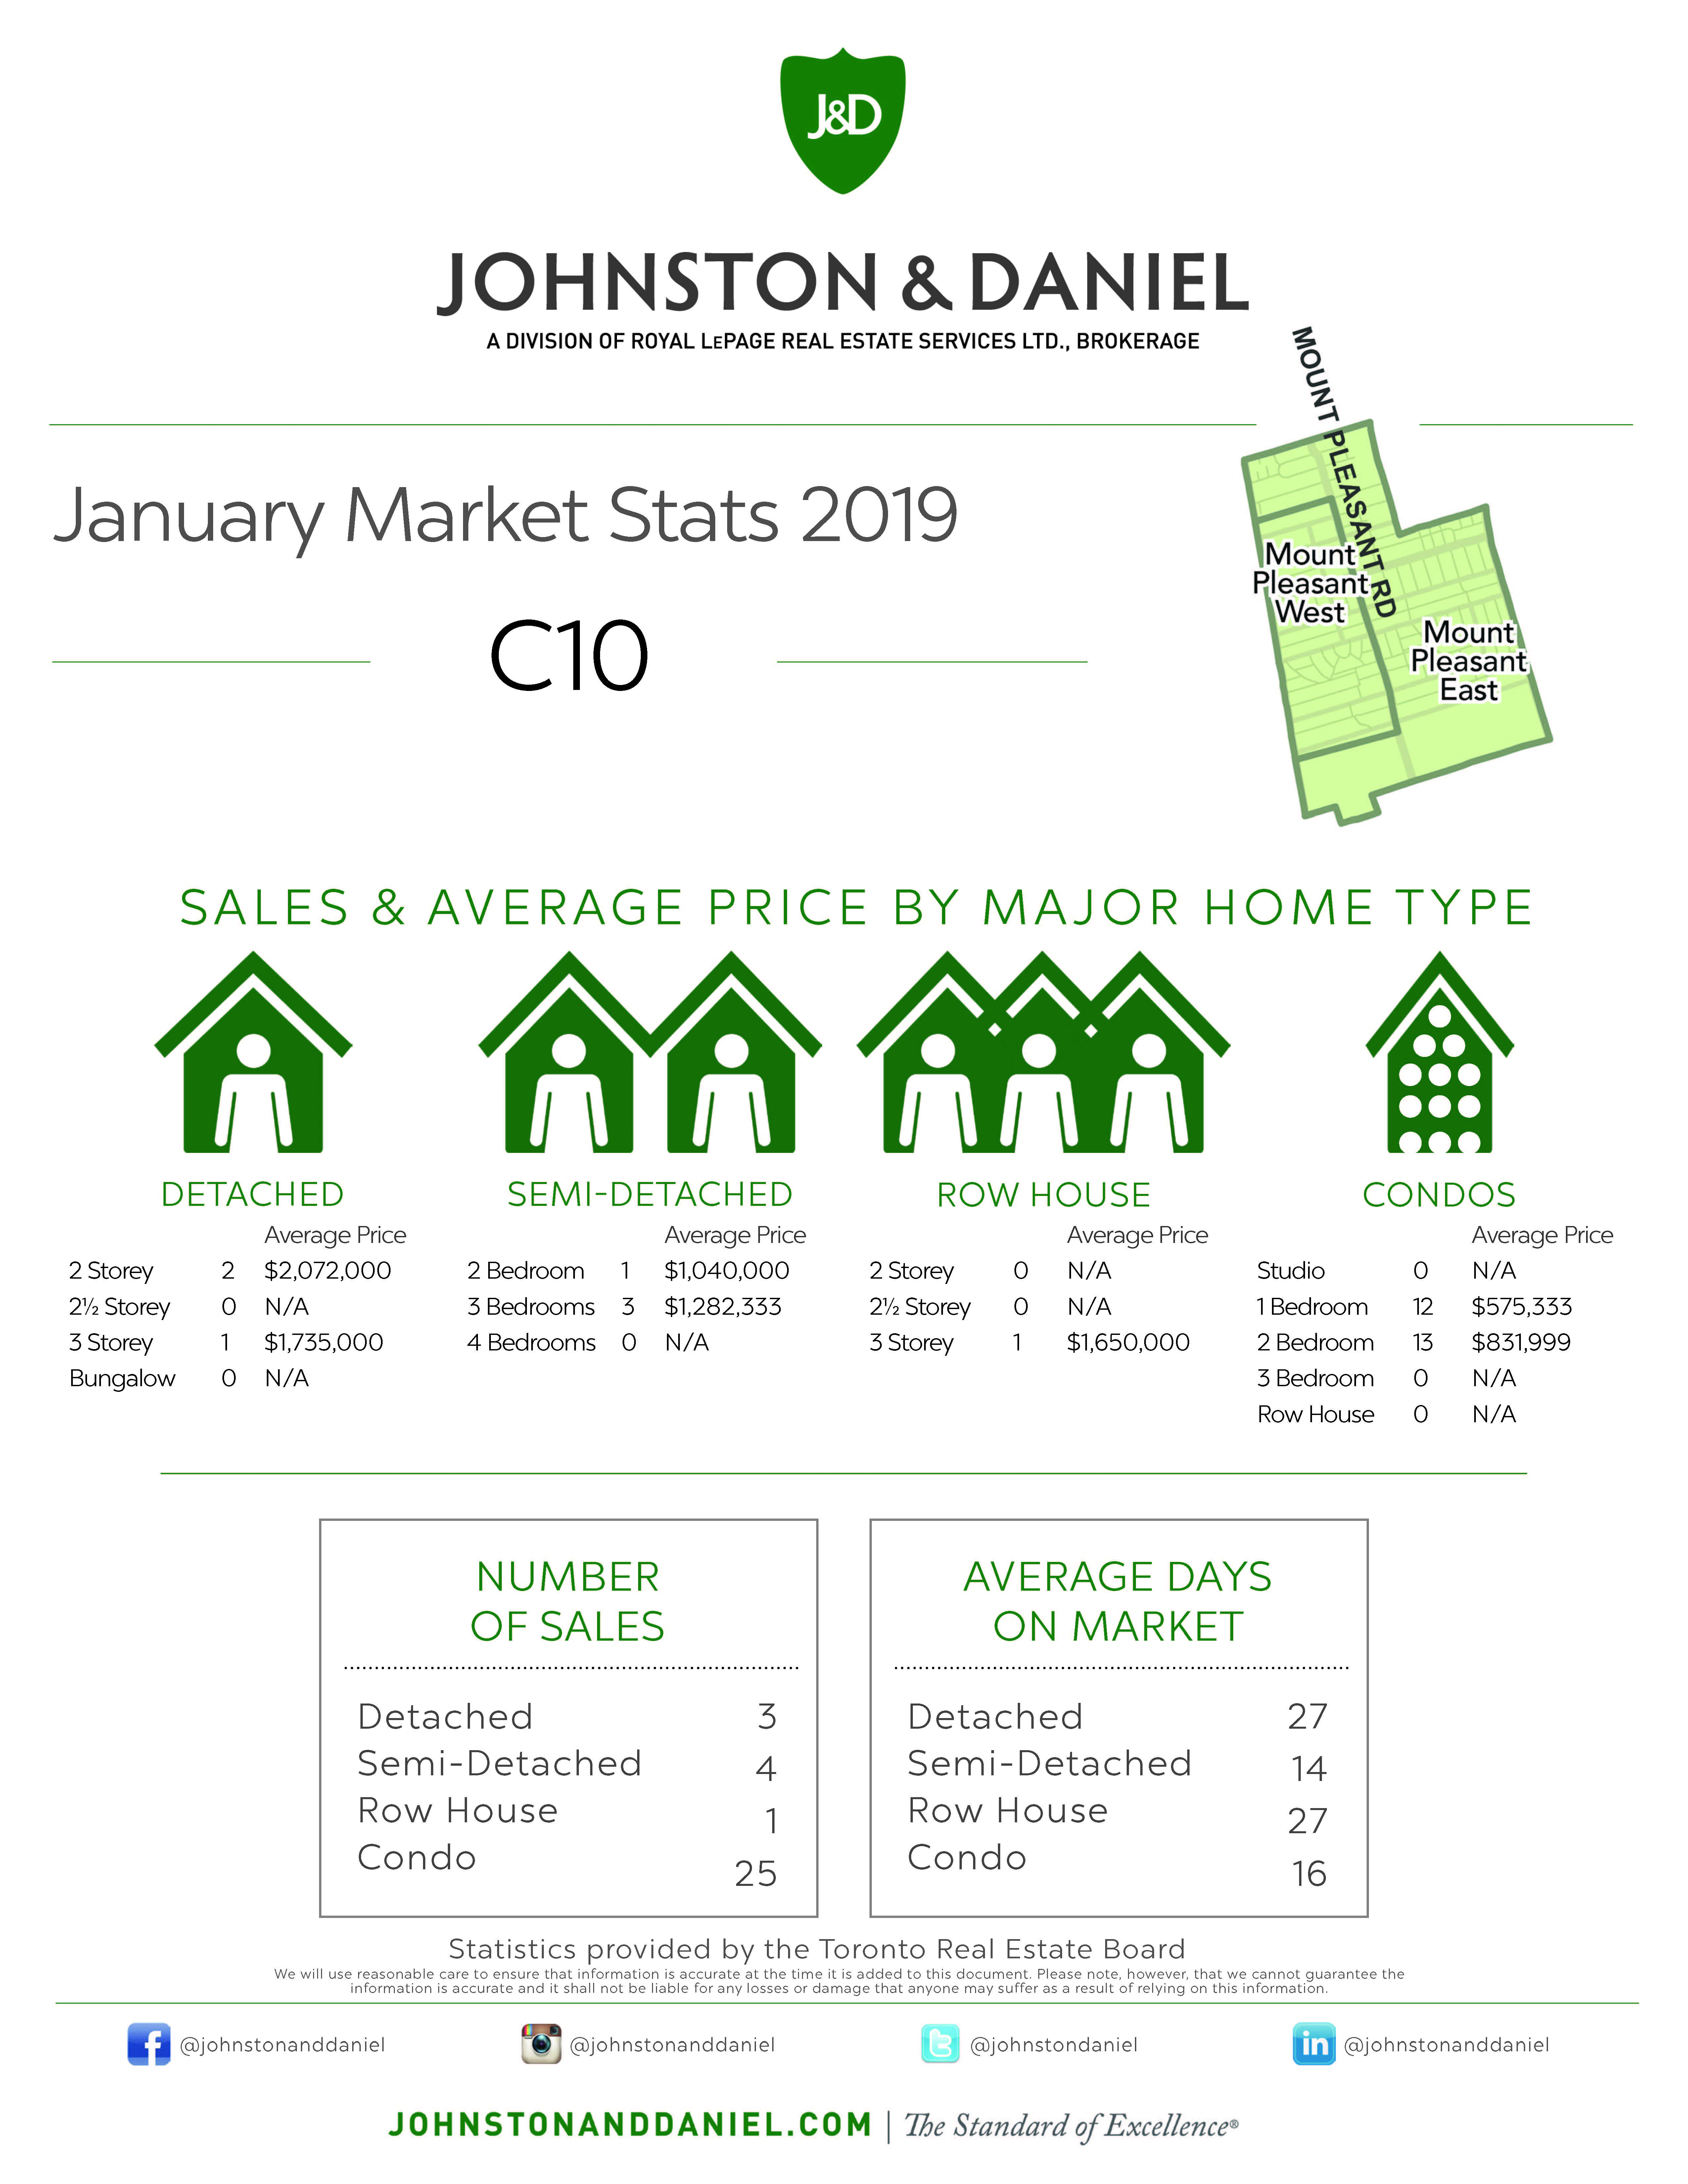 Toronto Real Estate Sales Statistics January 2019 for Area C10